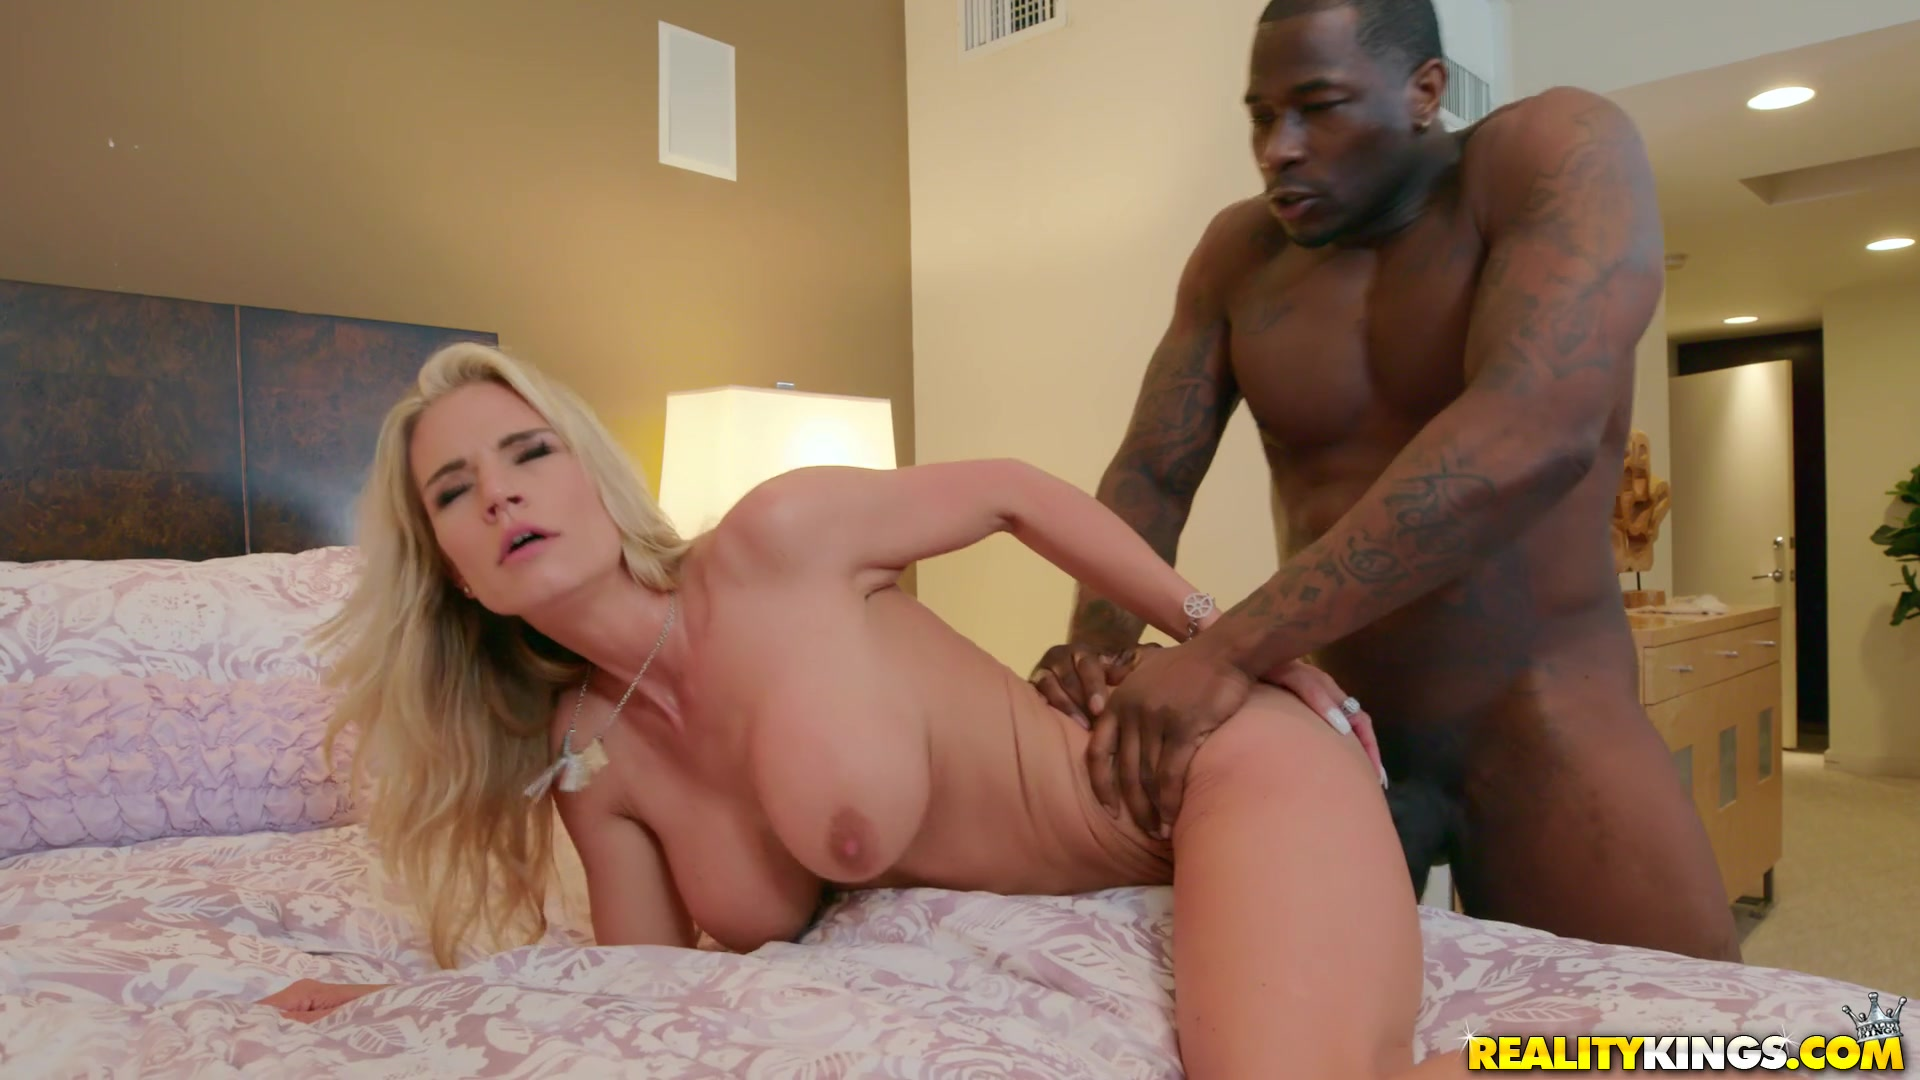 Deep anal for the married blonde who loves the BBC so much